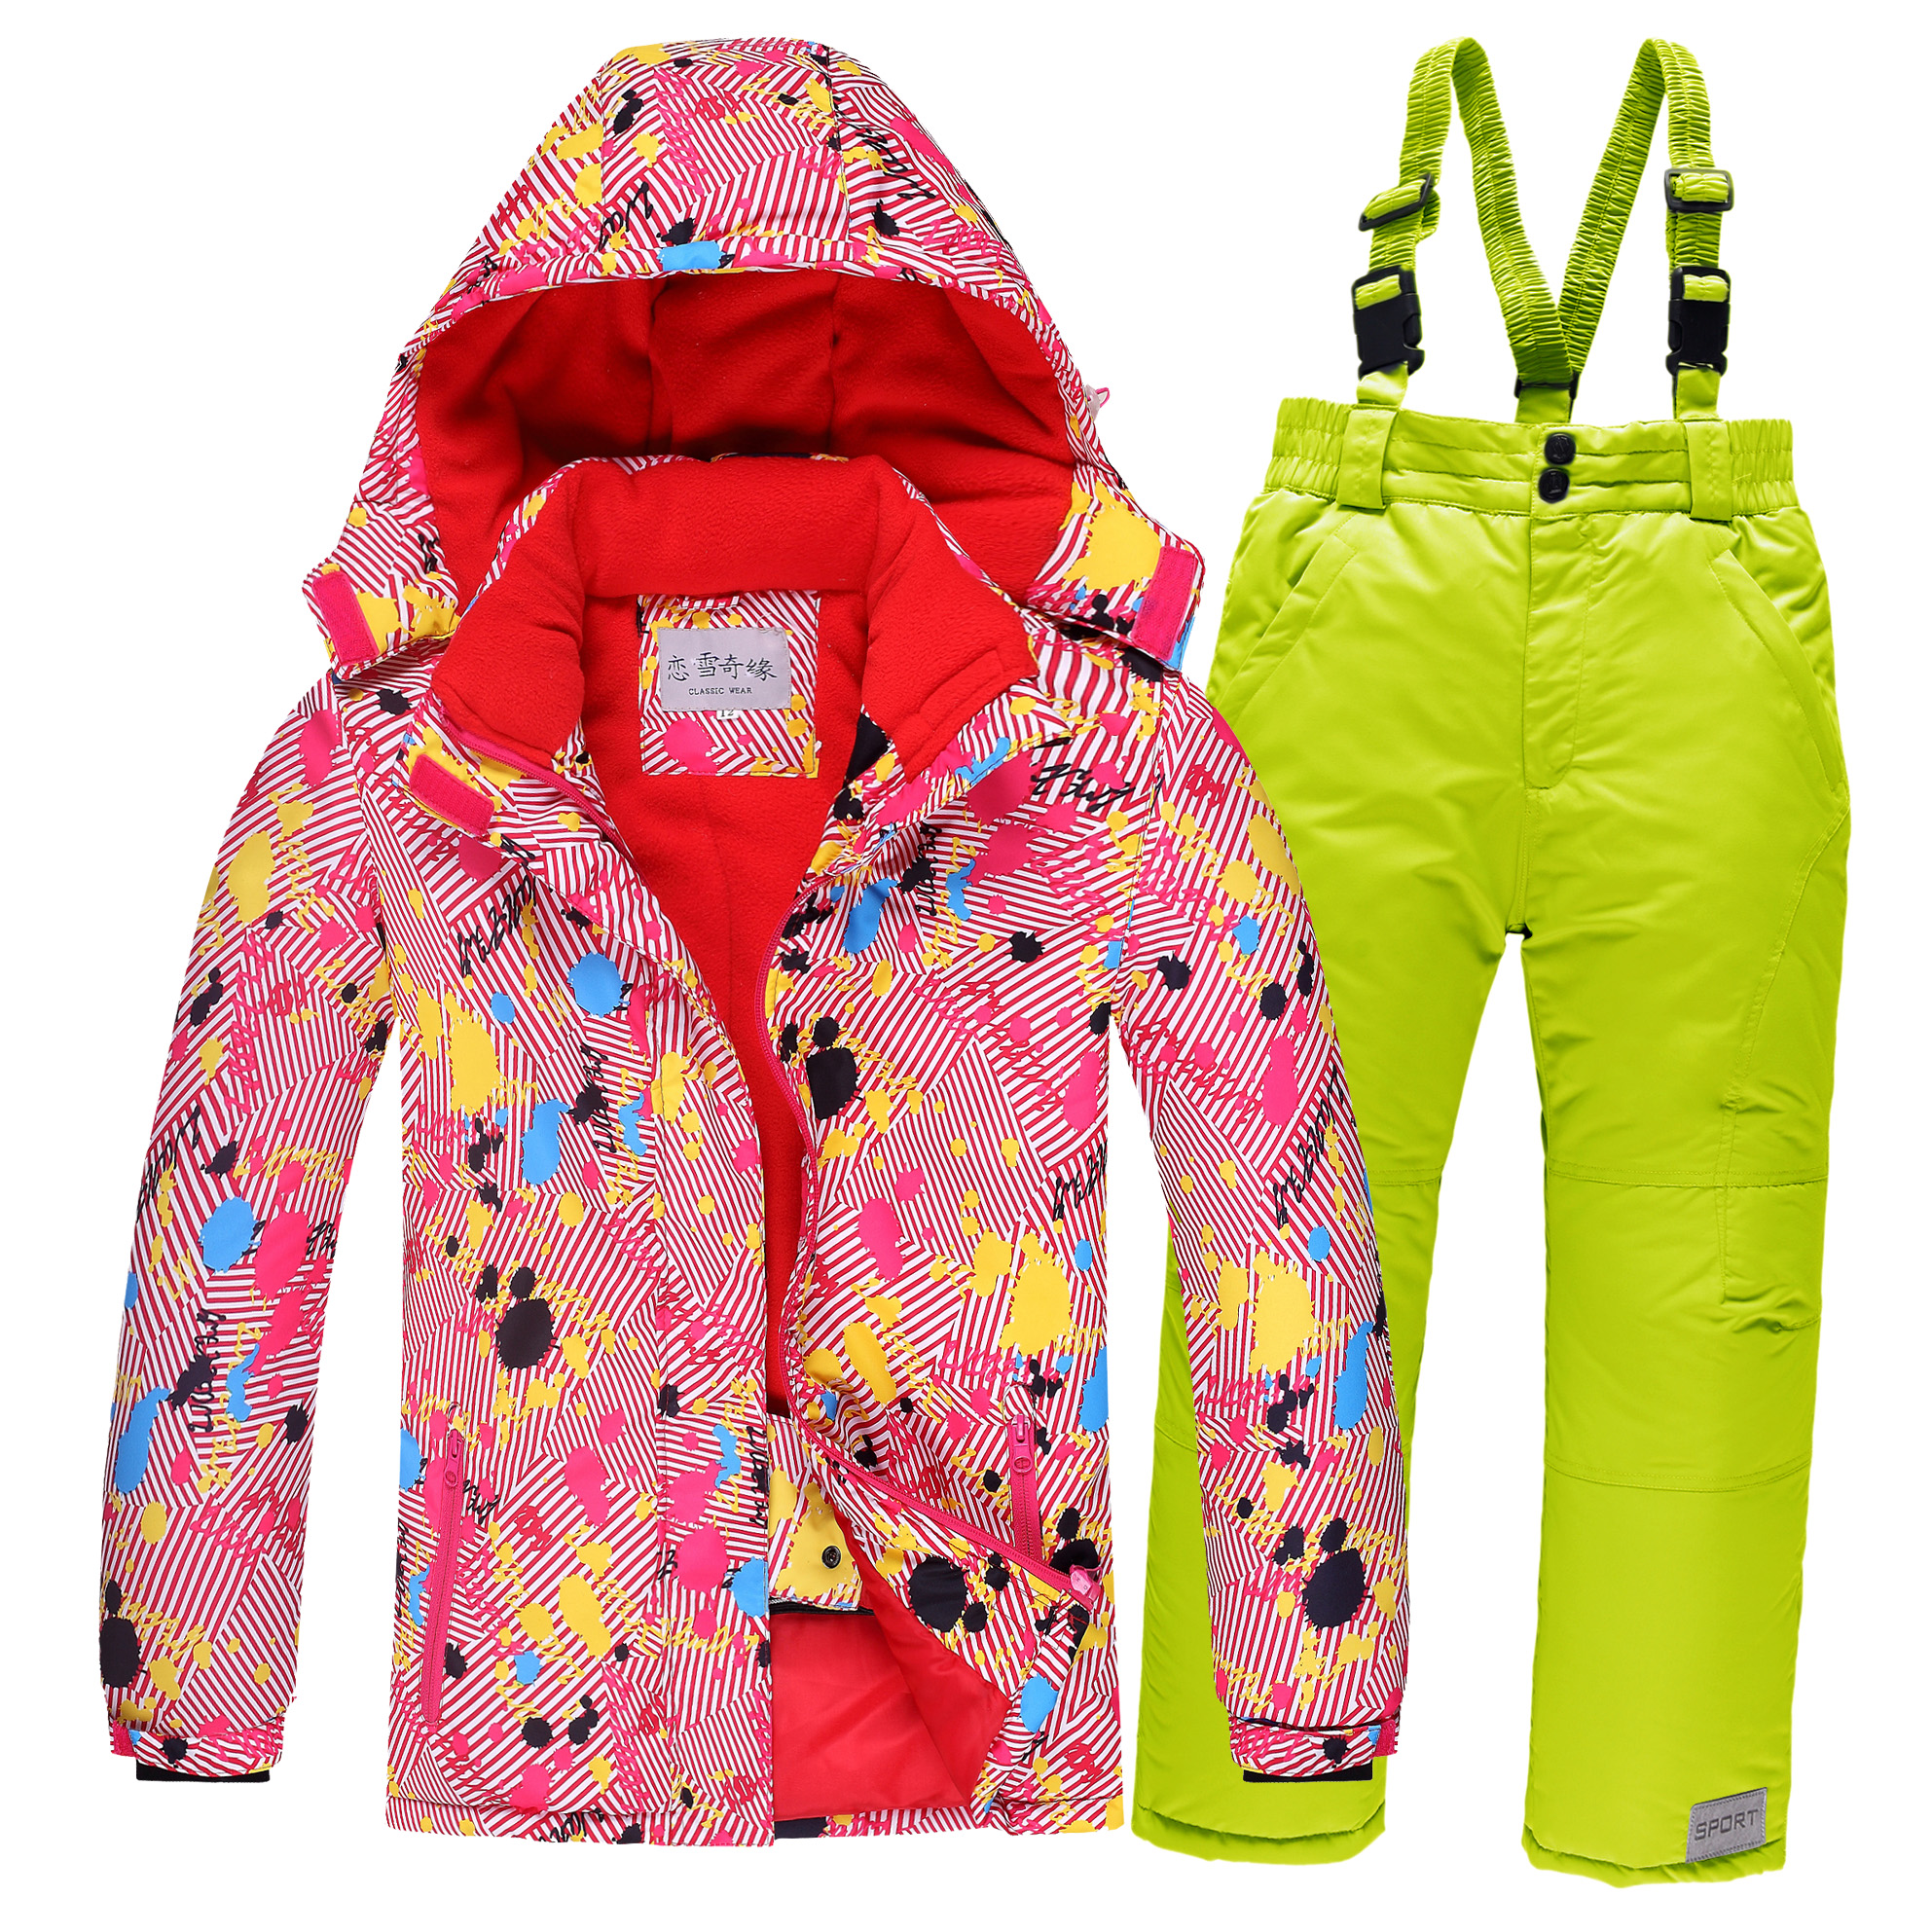 Children Ski Suit Thickened Kids Waterproof Super Warm Winter Suits Boys And Girls Outdoor Clothes Set -30 degreeChildren Ski Suit Thickened Kids Waterproof Super Warm Winter Suits Boys And Girls Outdoor Clothes Set -30 degree